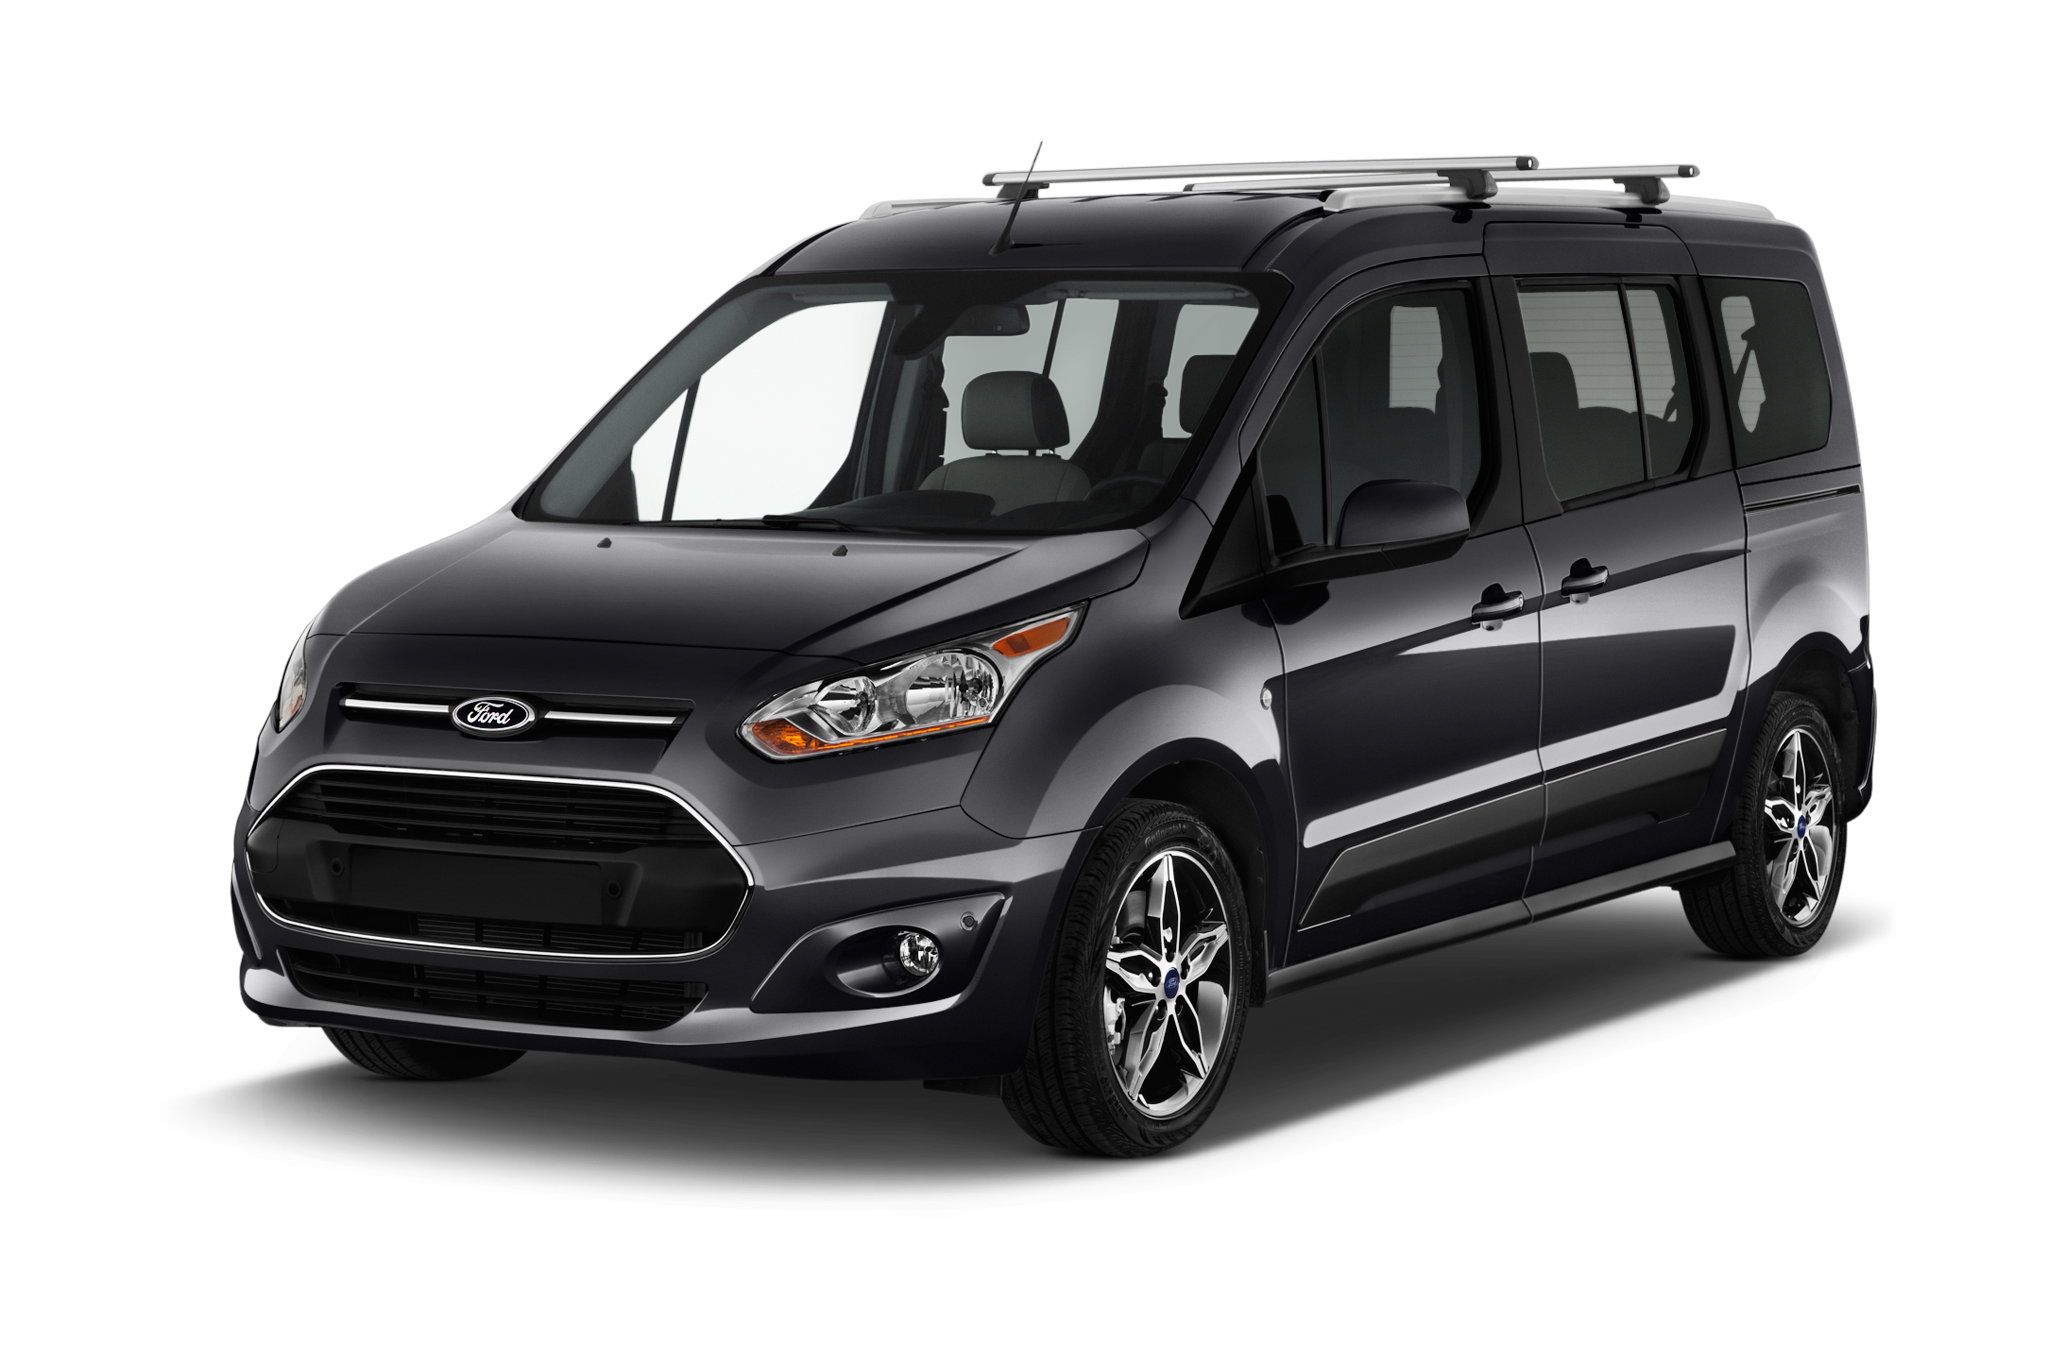 2017 ford transit connect titanium swb wagon reviews msn autos. Black Bedroom Furniture Sets. Home Design Ideas